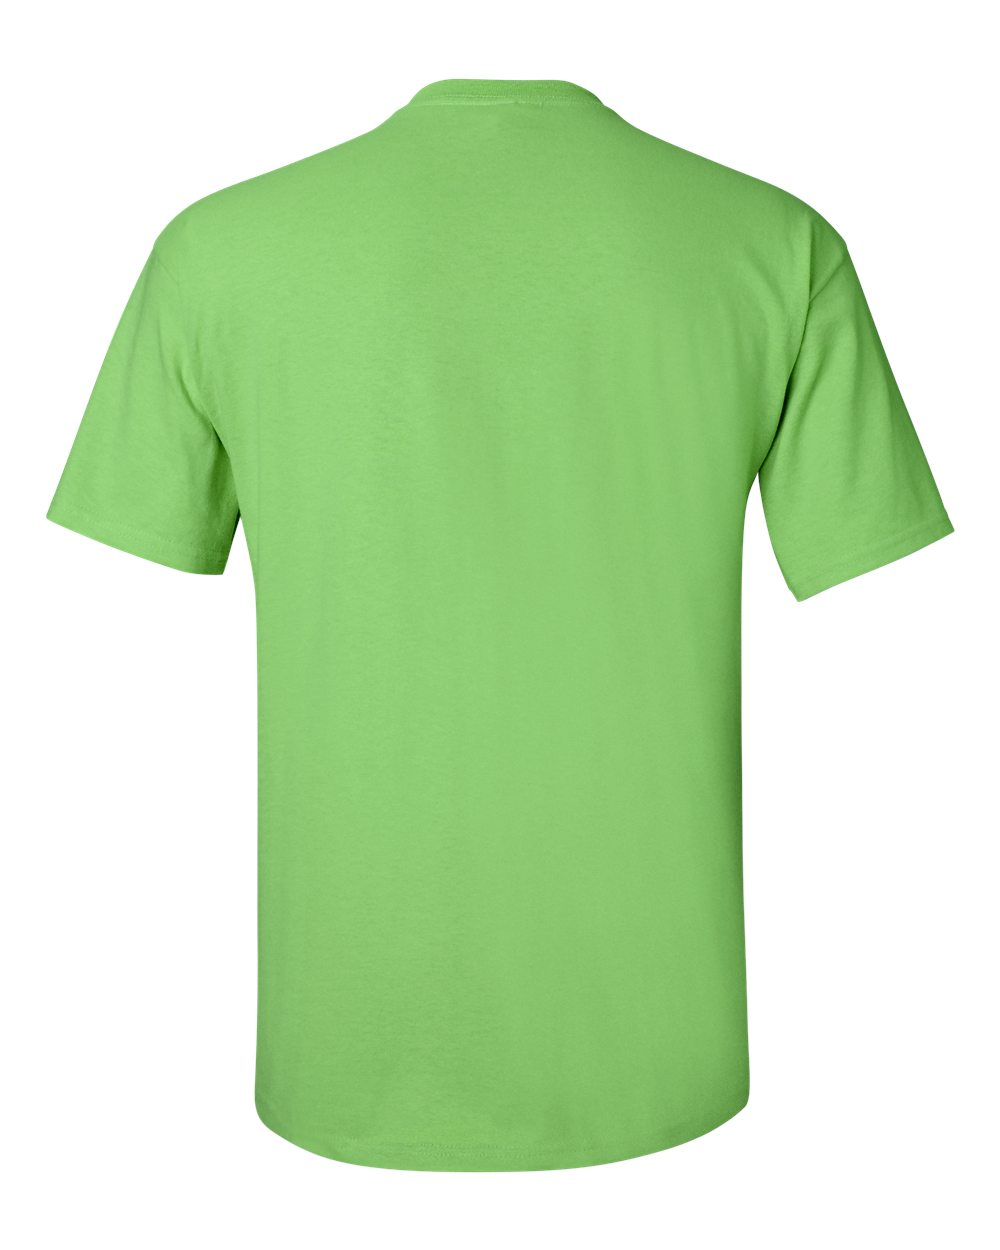 Lime green t shirts design your own custom t shirts for Custom t shirts design your own